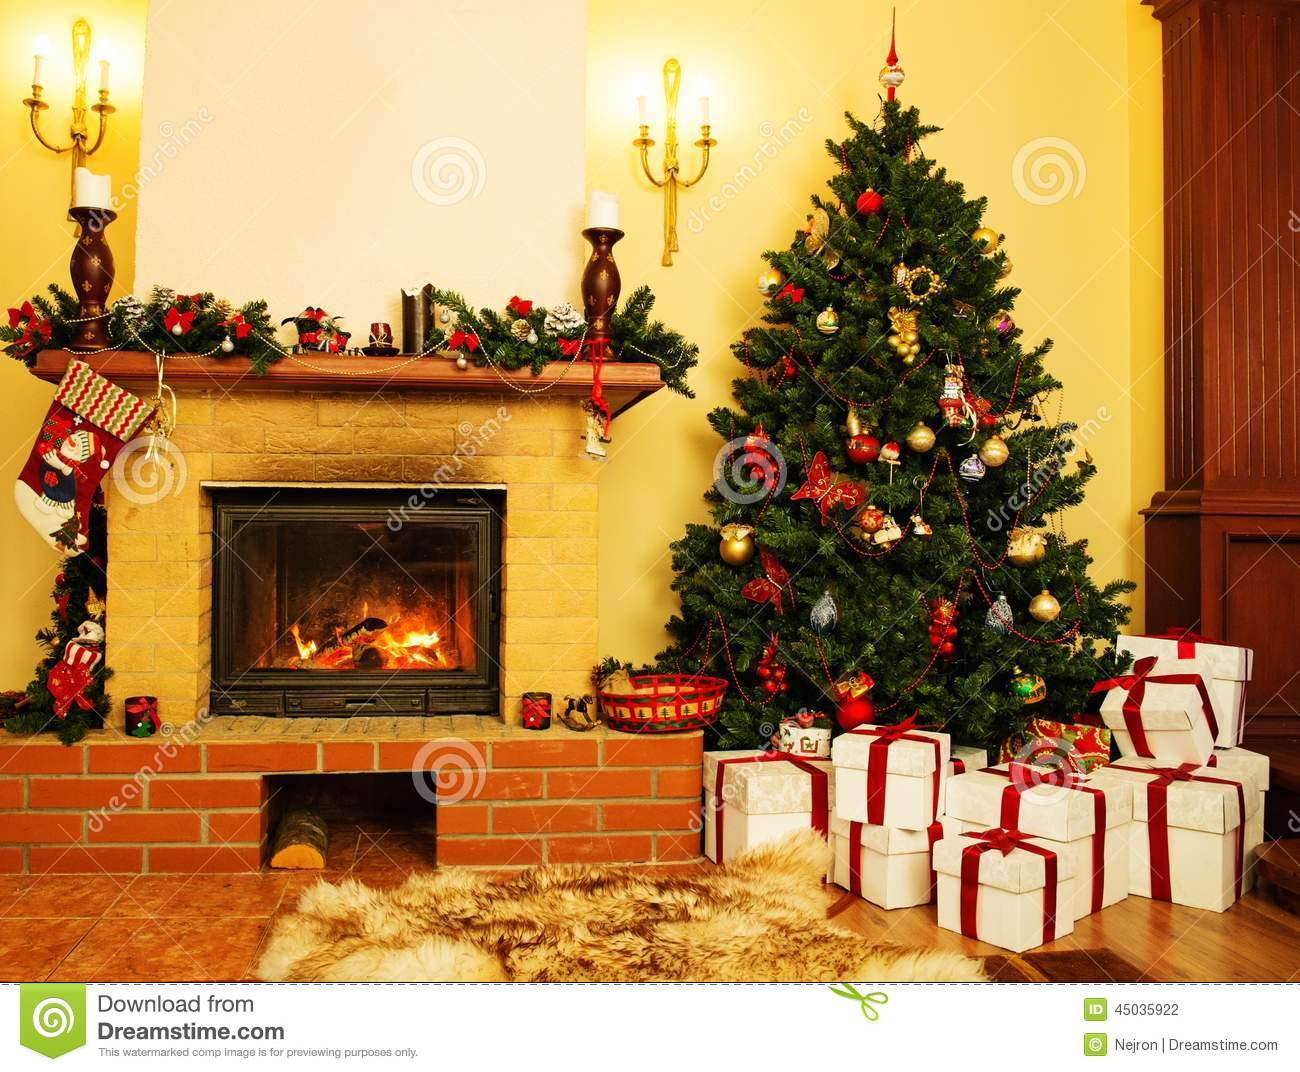 No l a d cor l 39 int rieur de maison photo stock image du for Cadeau decoration interieur